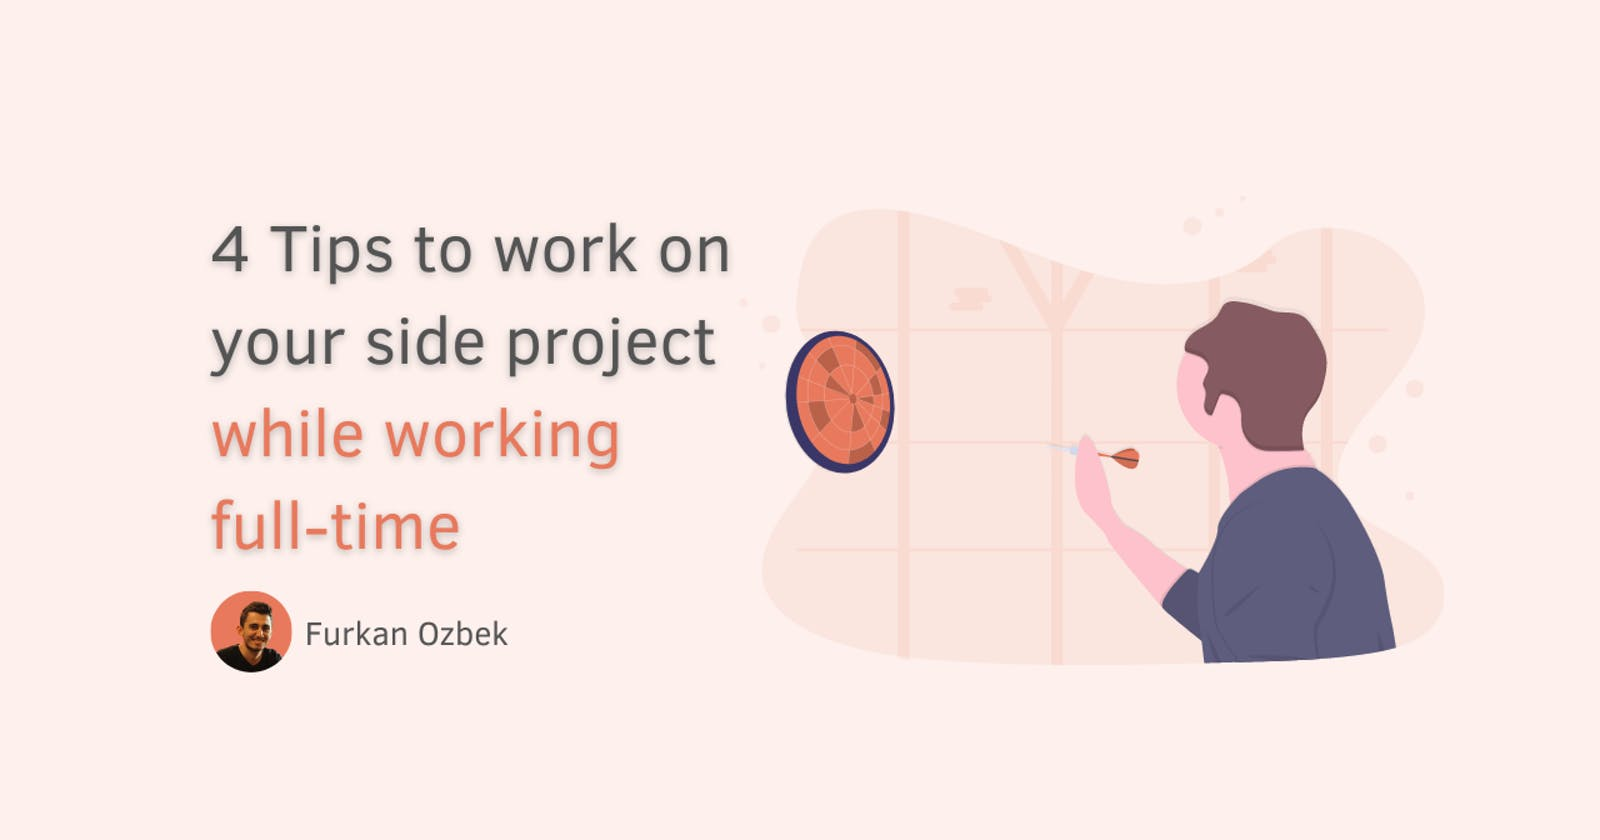 4 Tips to work on your side project while working full-time